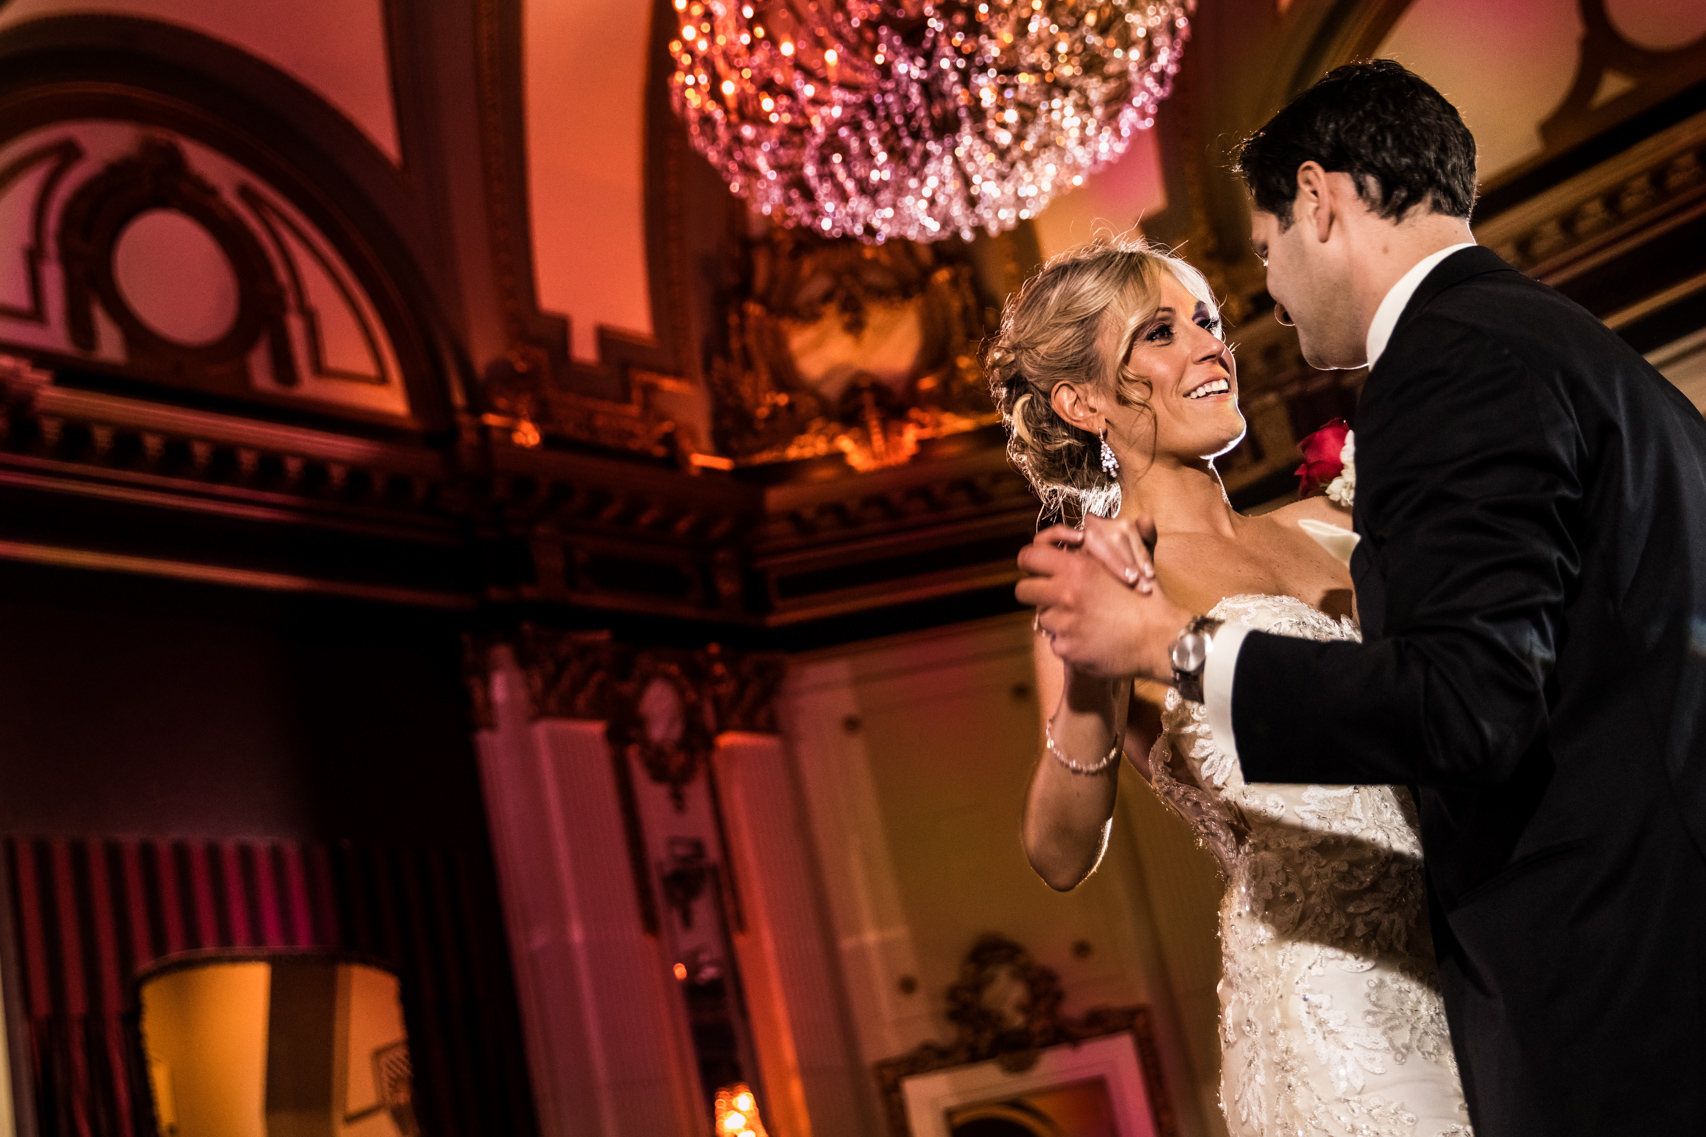 Bride and groom during their first dance in a grand ballroom at the Belvedere Hotel in Baltimore